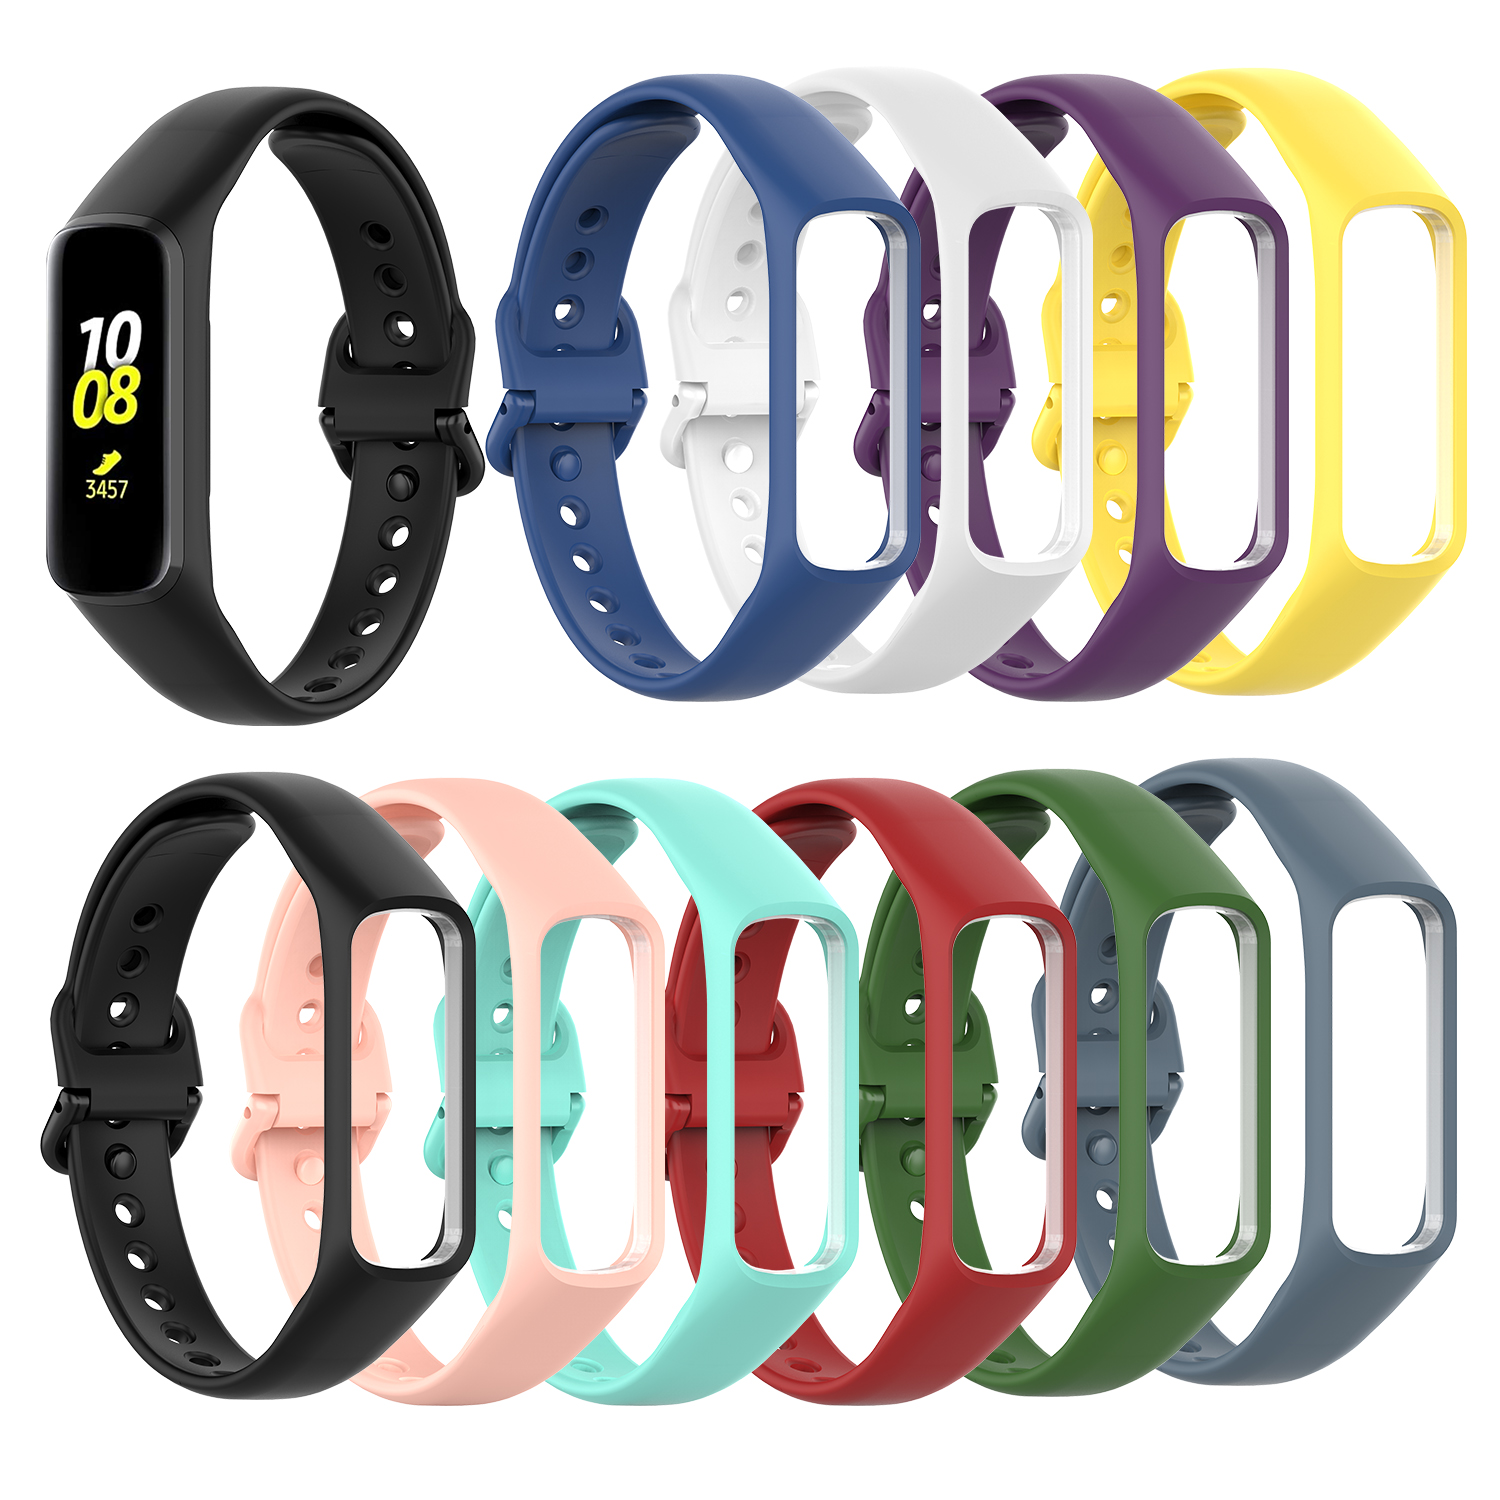 New Fit-e R375 Smart Watch Band For Fit E Fitness Tracker Wristband Accessories Sport Strap For Samsung Galaxy